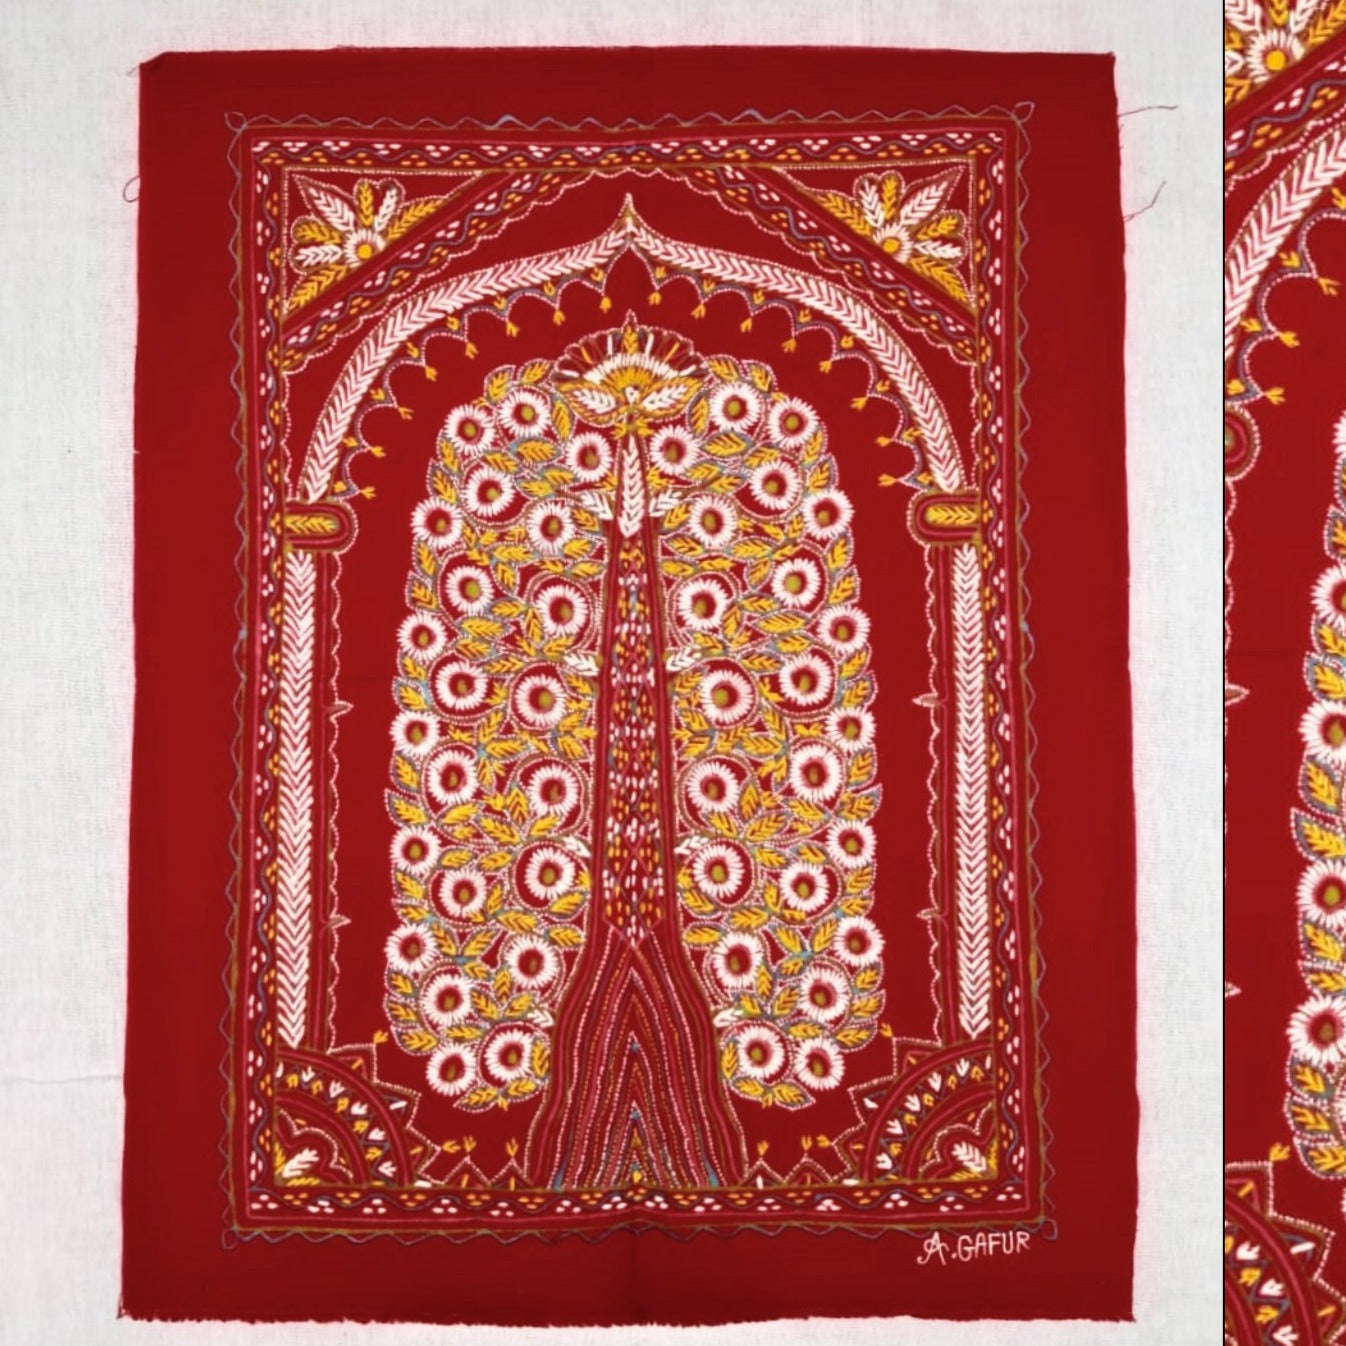 The Tree of Life Traditional Rogan Art Painted Wall Hanging by Sumar Khatri